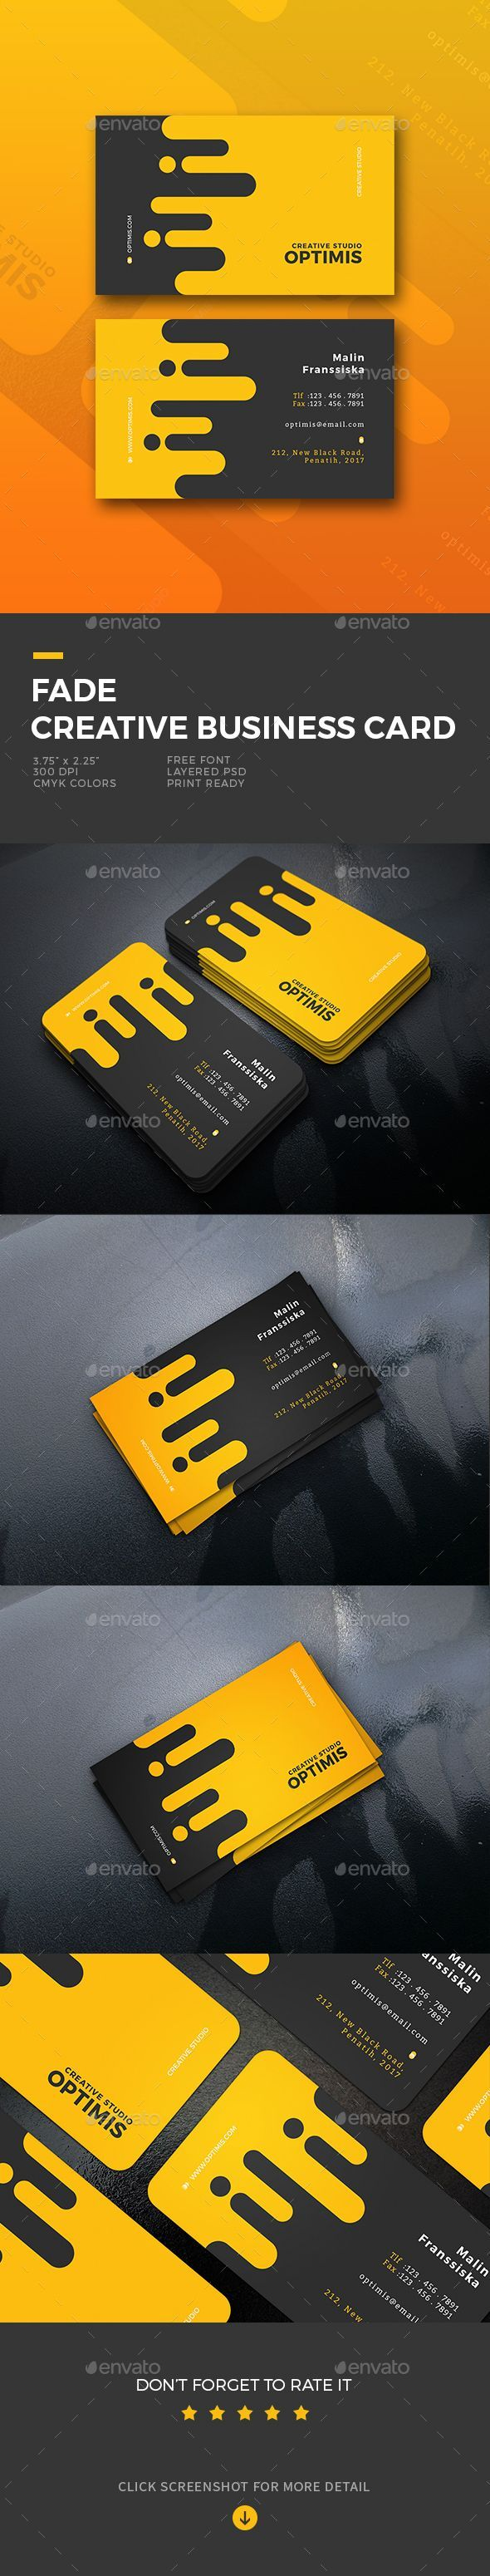 Best 25 business cards ideas on pinterest business card design best 25 business cards ideas on pinterest business card design visiting card design online and minimalist business cards magicingreecefo Gallery